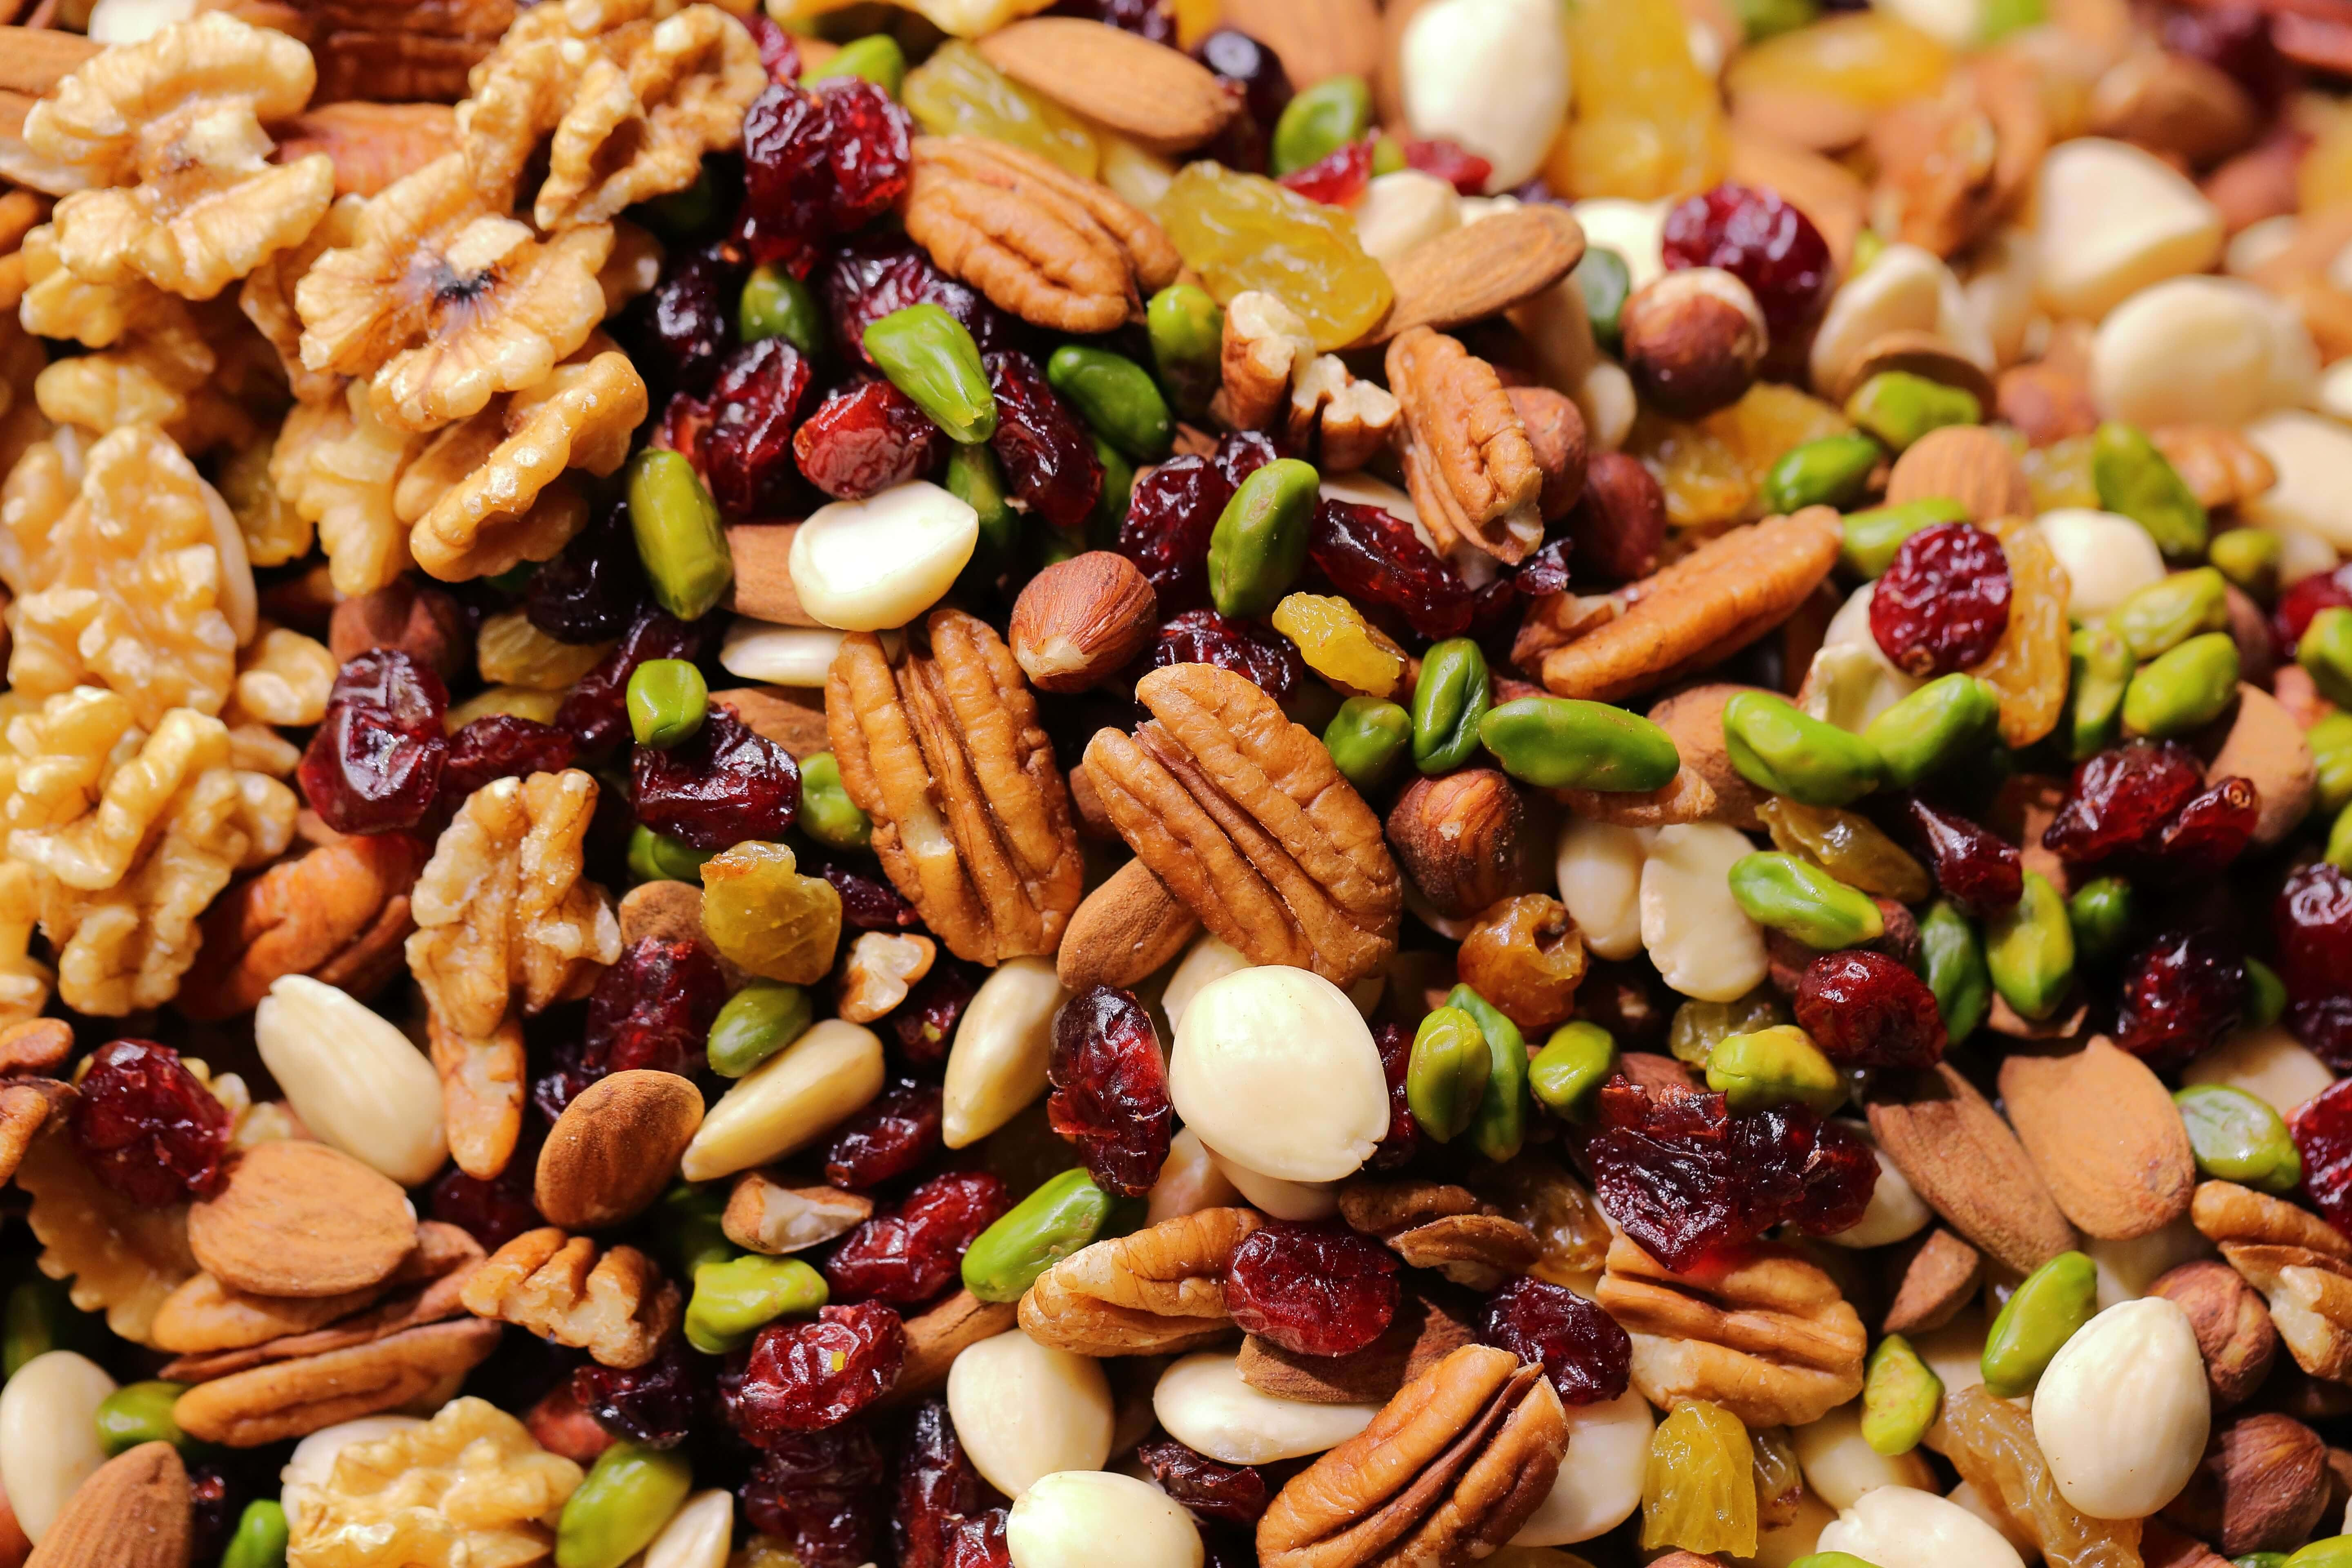 Close up detail of walnuts, pumpkin seeds and nuts